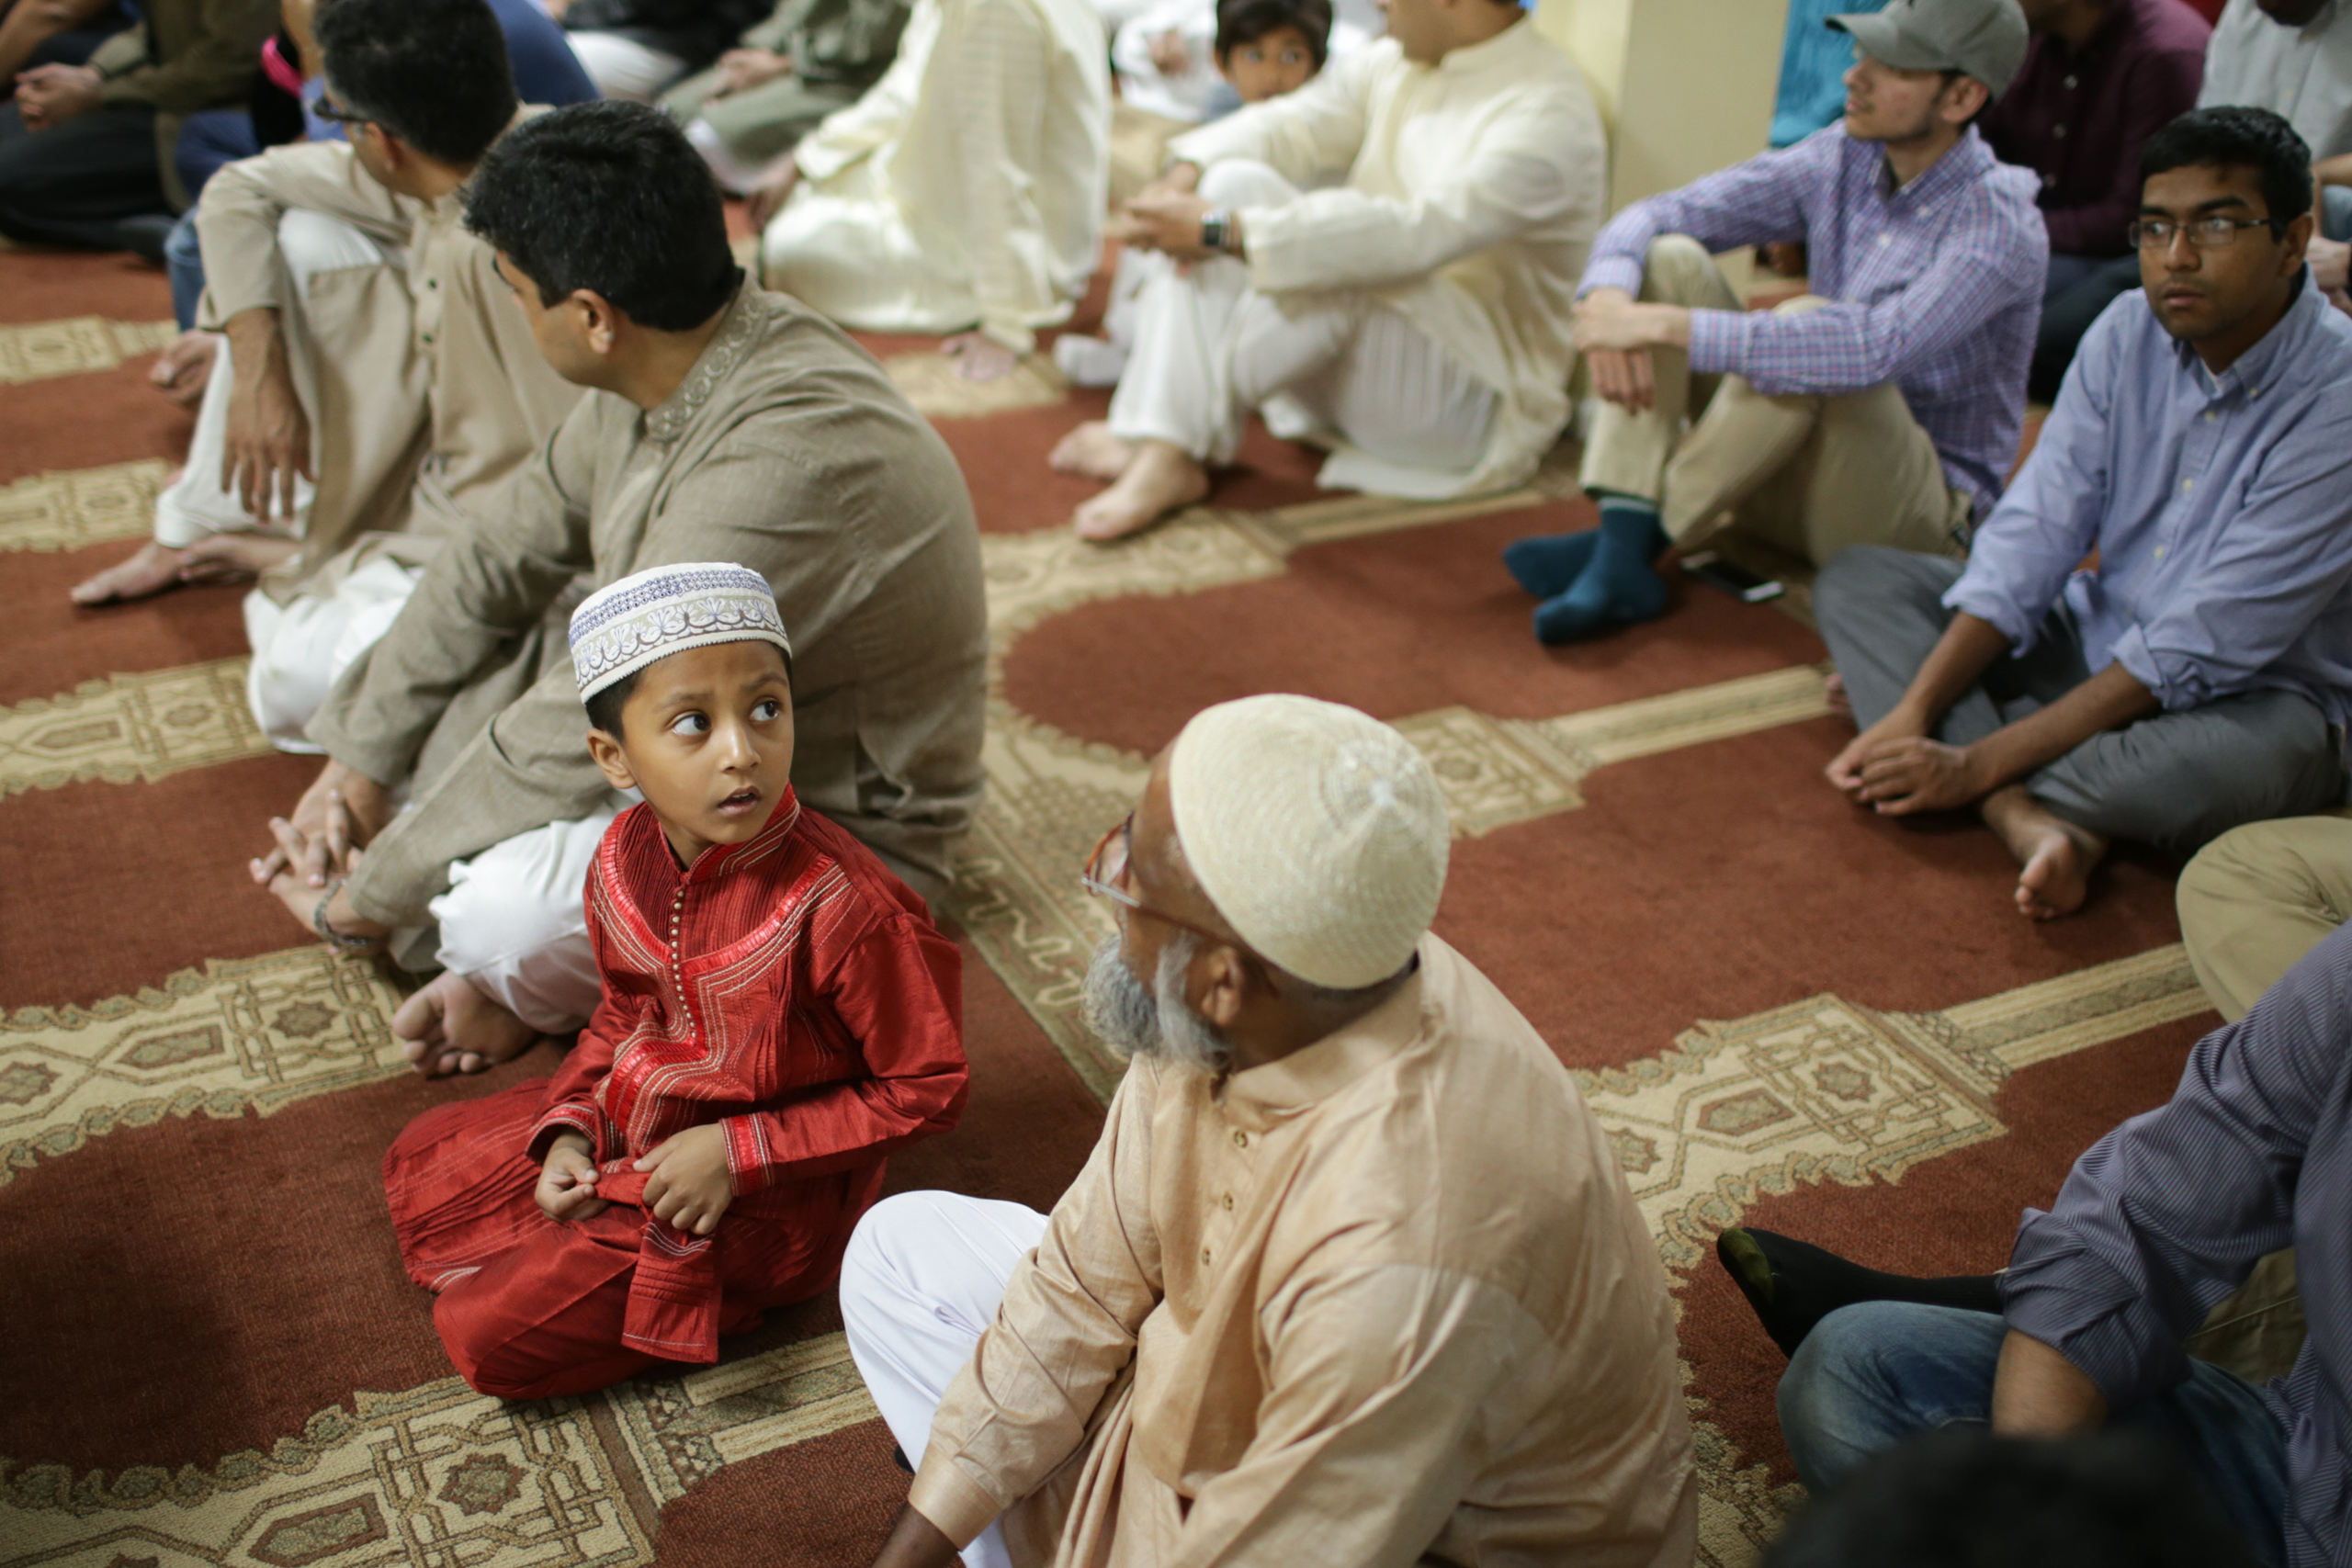 A Muslim child prays during Eid al-Adha at the Al-Huda Islamic Center in Athens, Ga., on Sept.12, 2016.